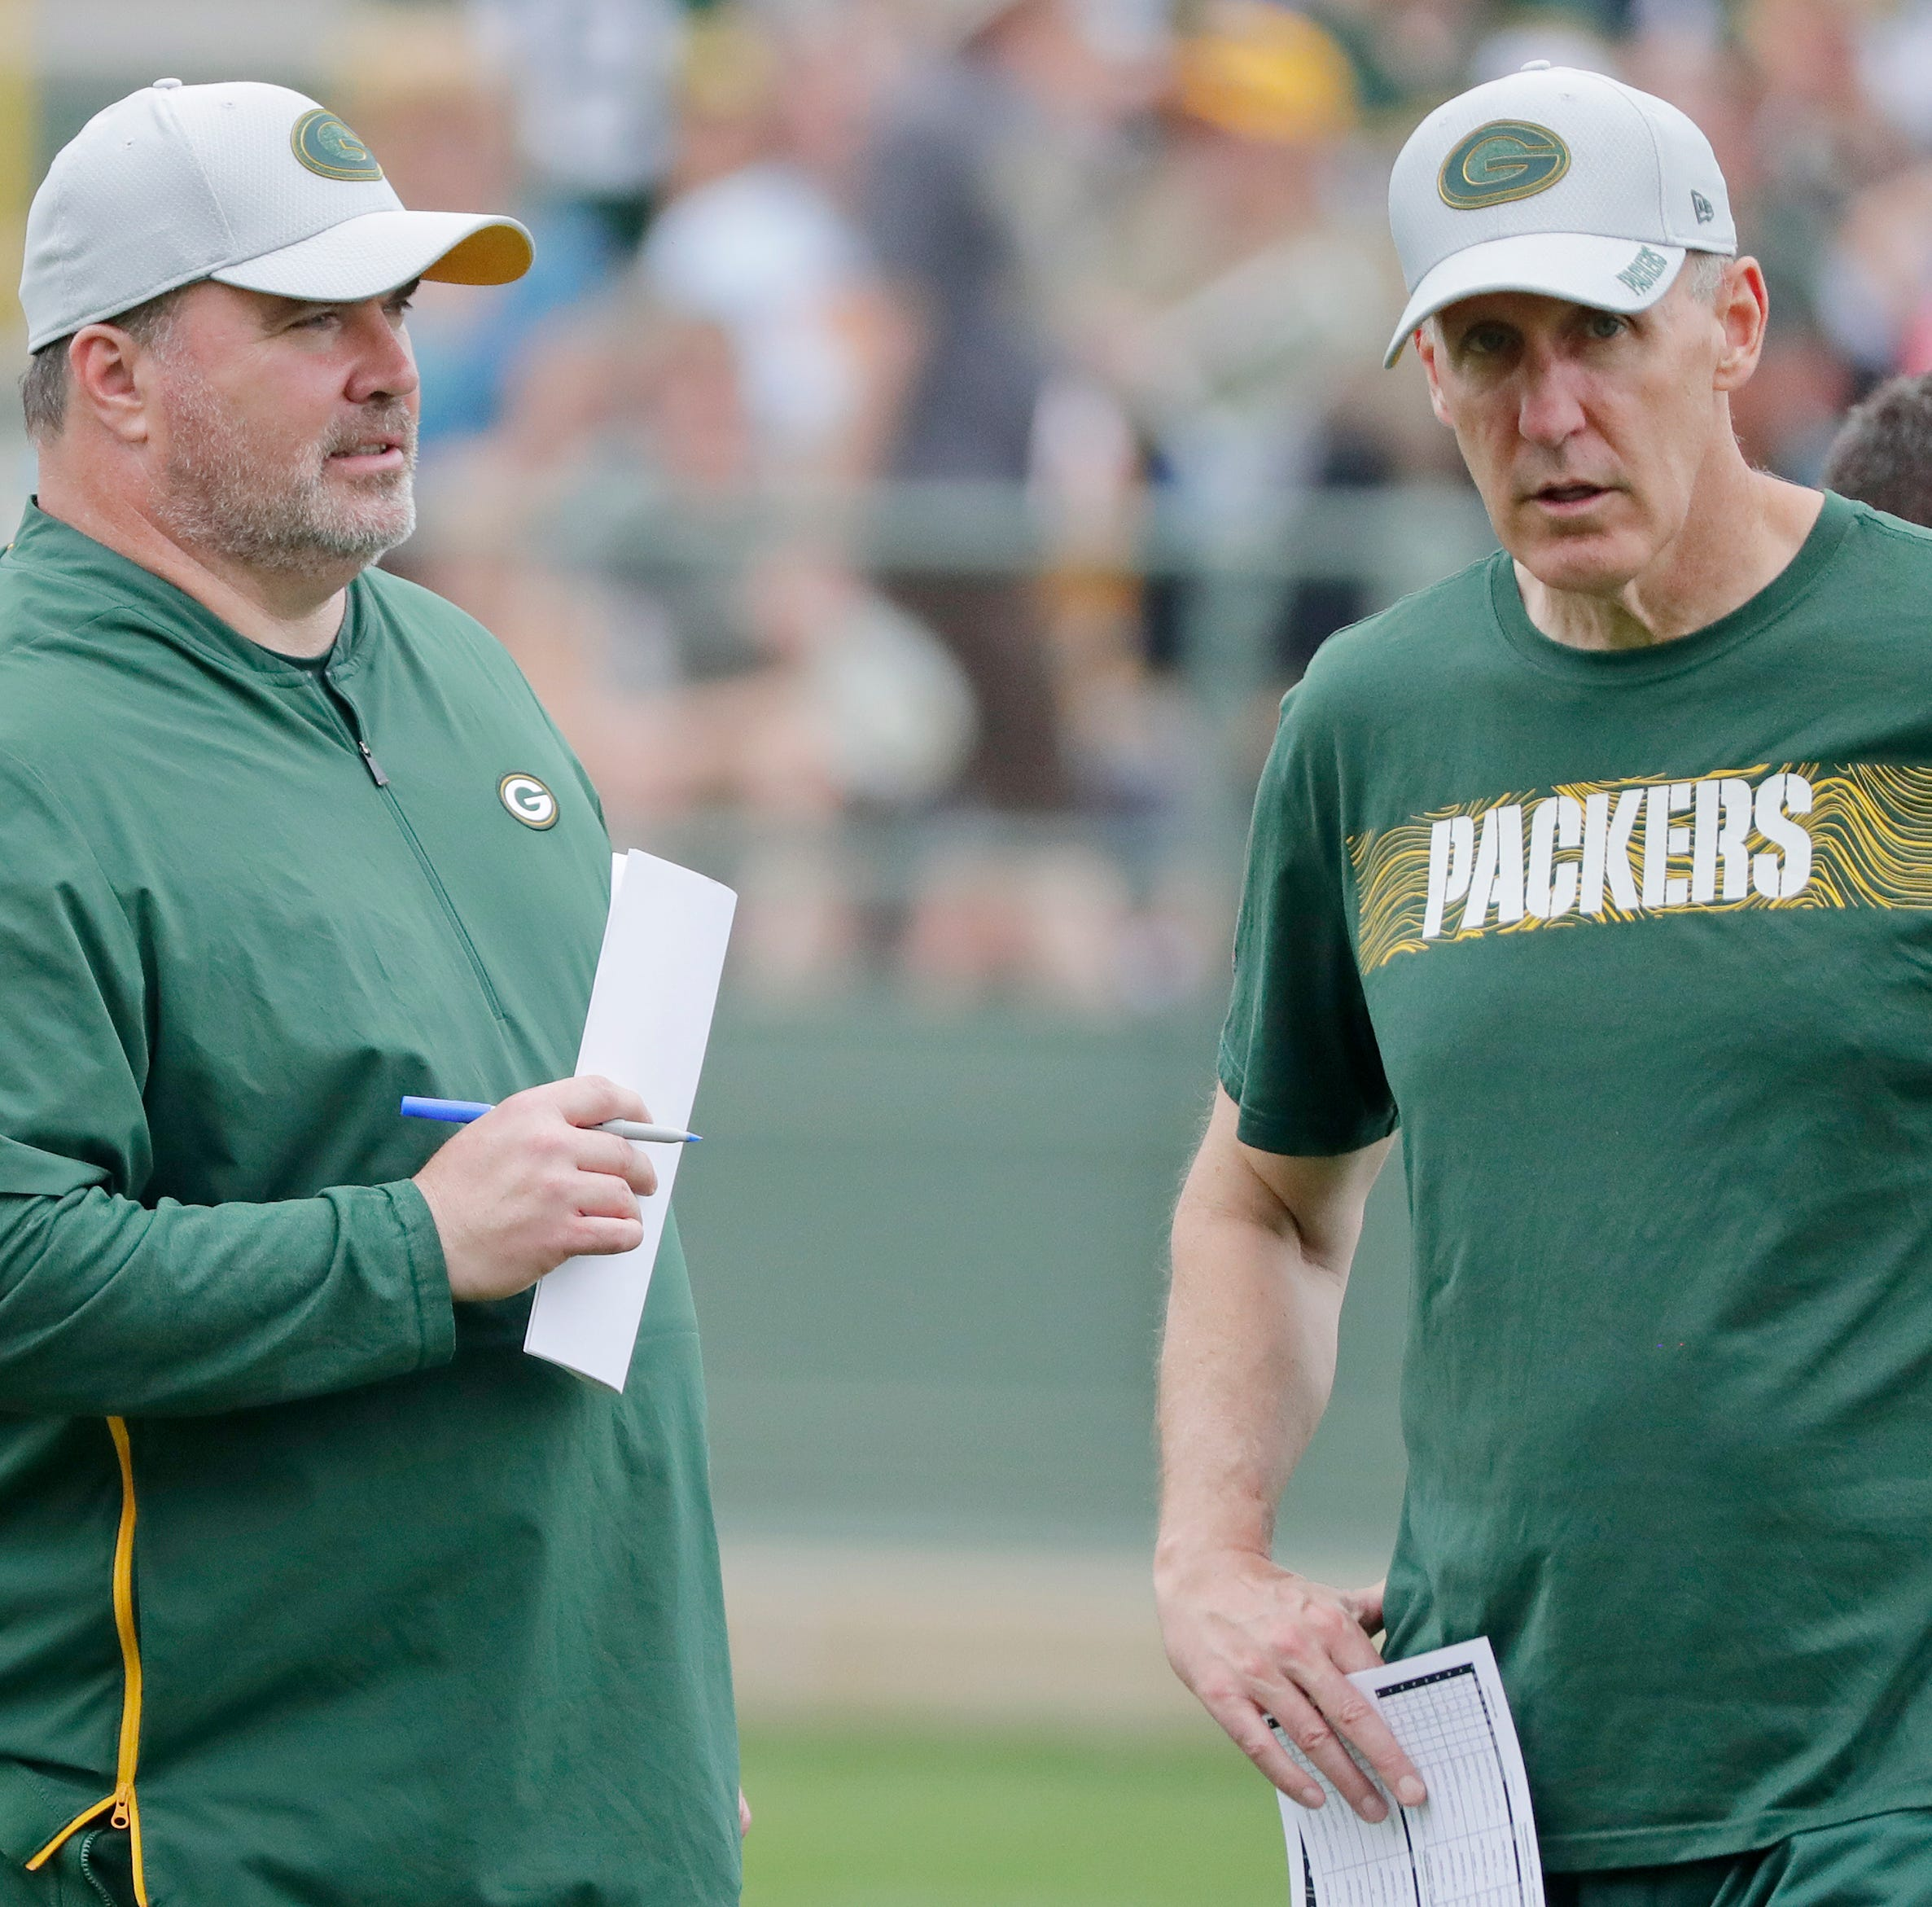 Packers notes: Third-down conversion rate needs to improve